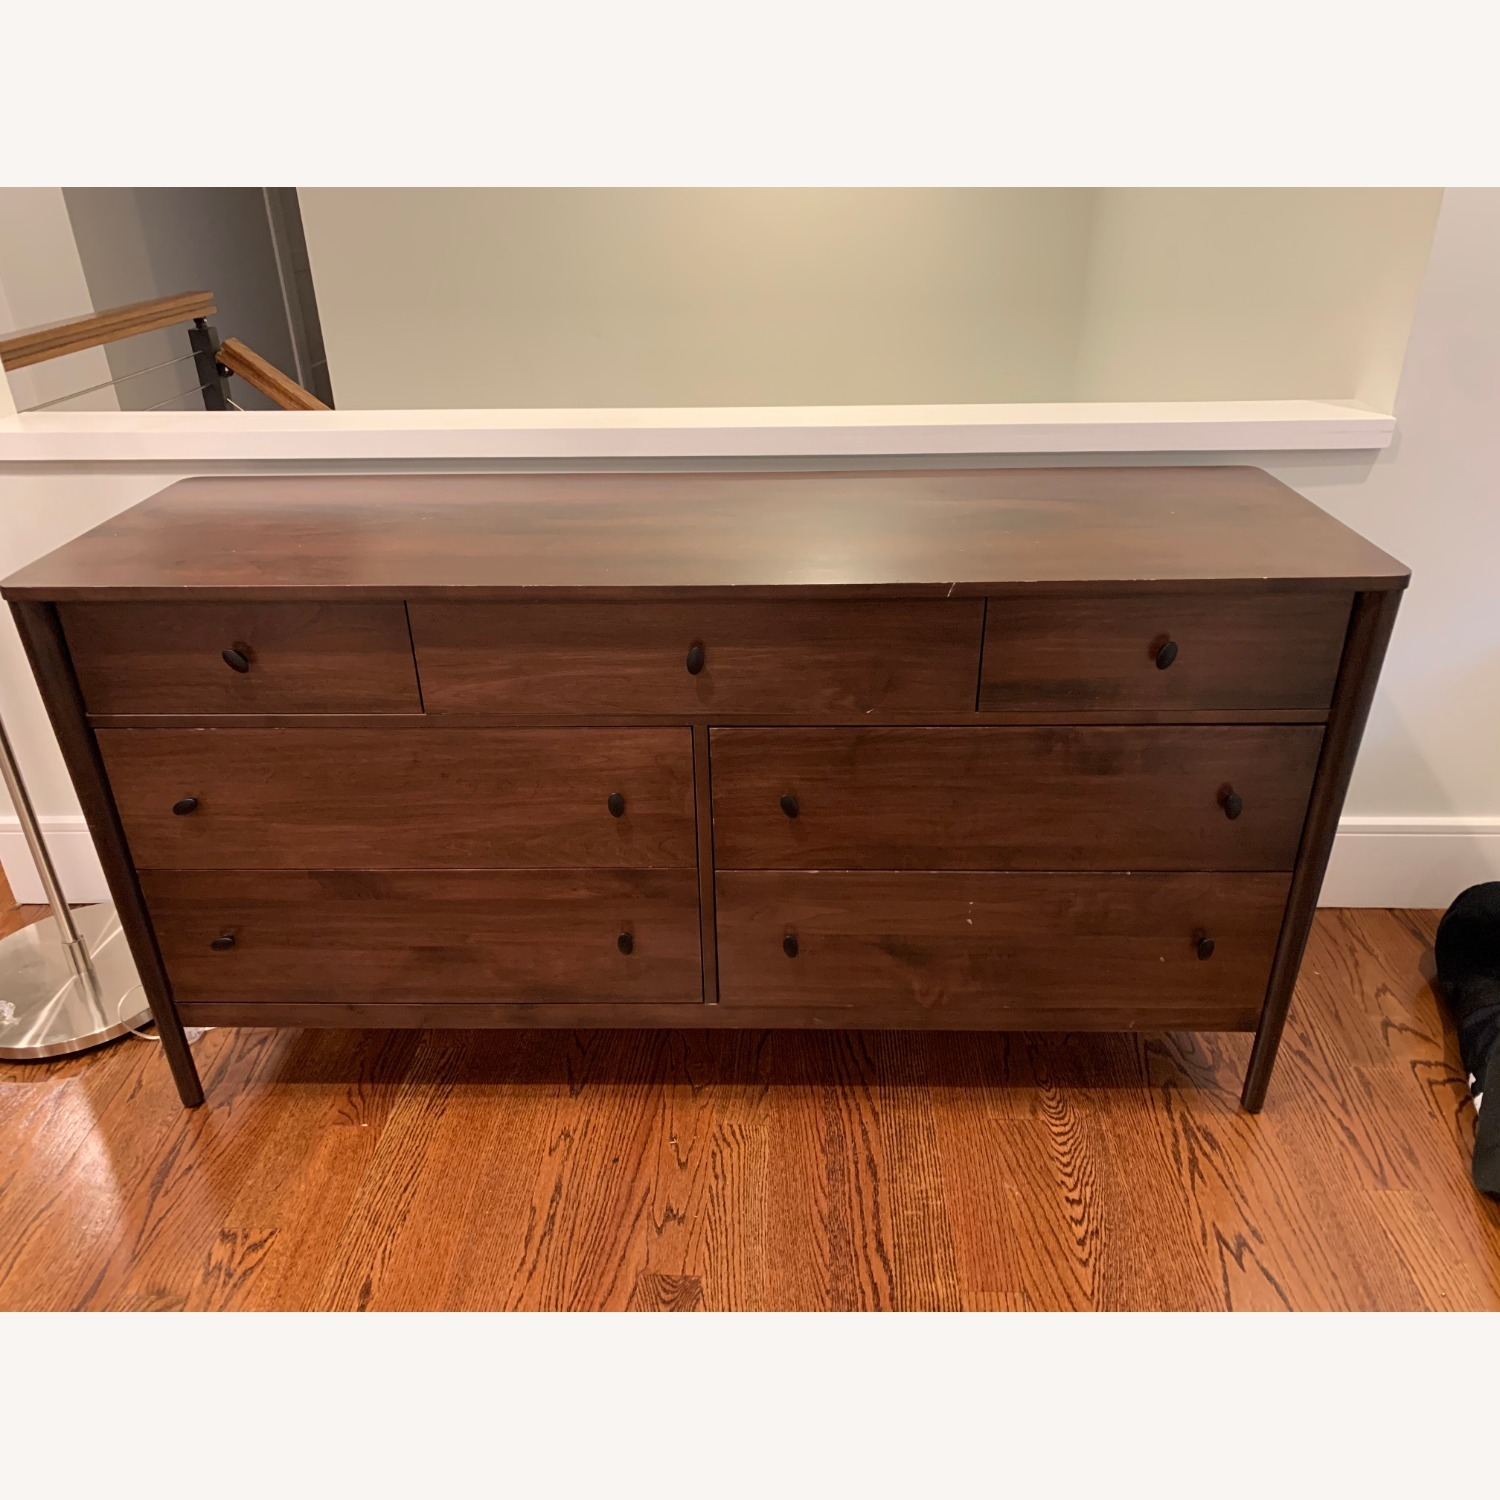 Crate & Barrel Gia 7-Drawer Dresser, Solid Maple - image-1